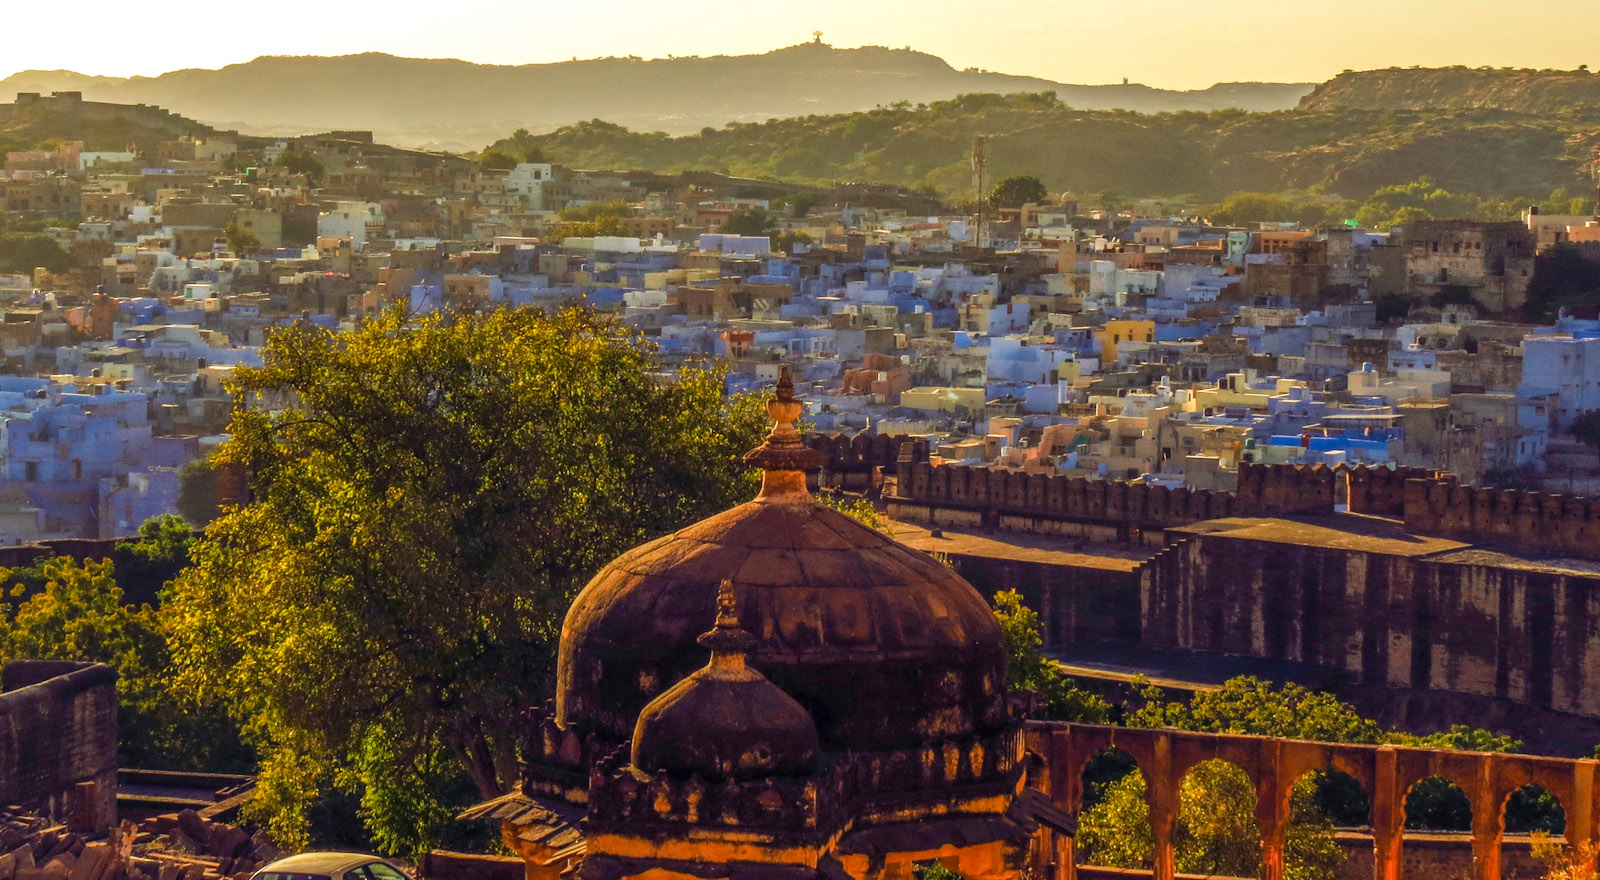 jodphur-fort-dome-and-blue-houses